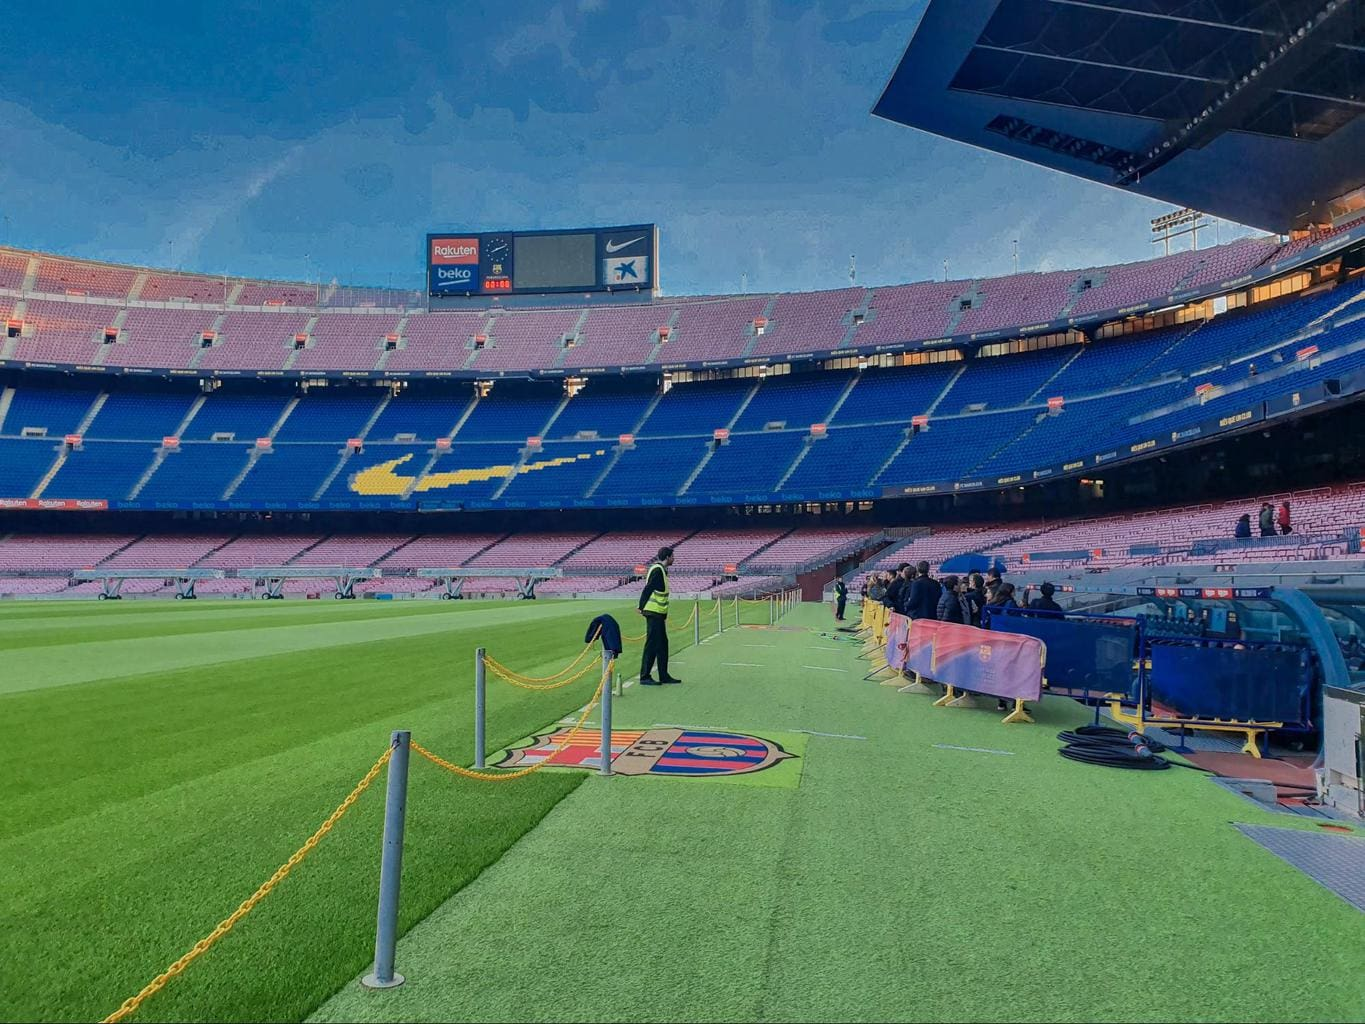 Walk and touch the grass during the Players Experience Camp Nou tour